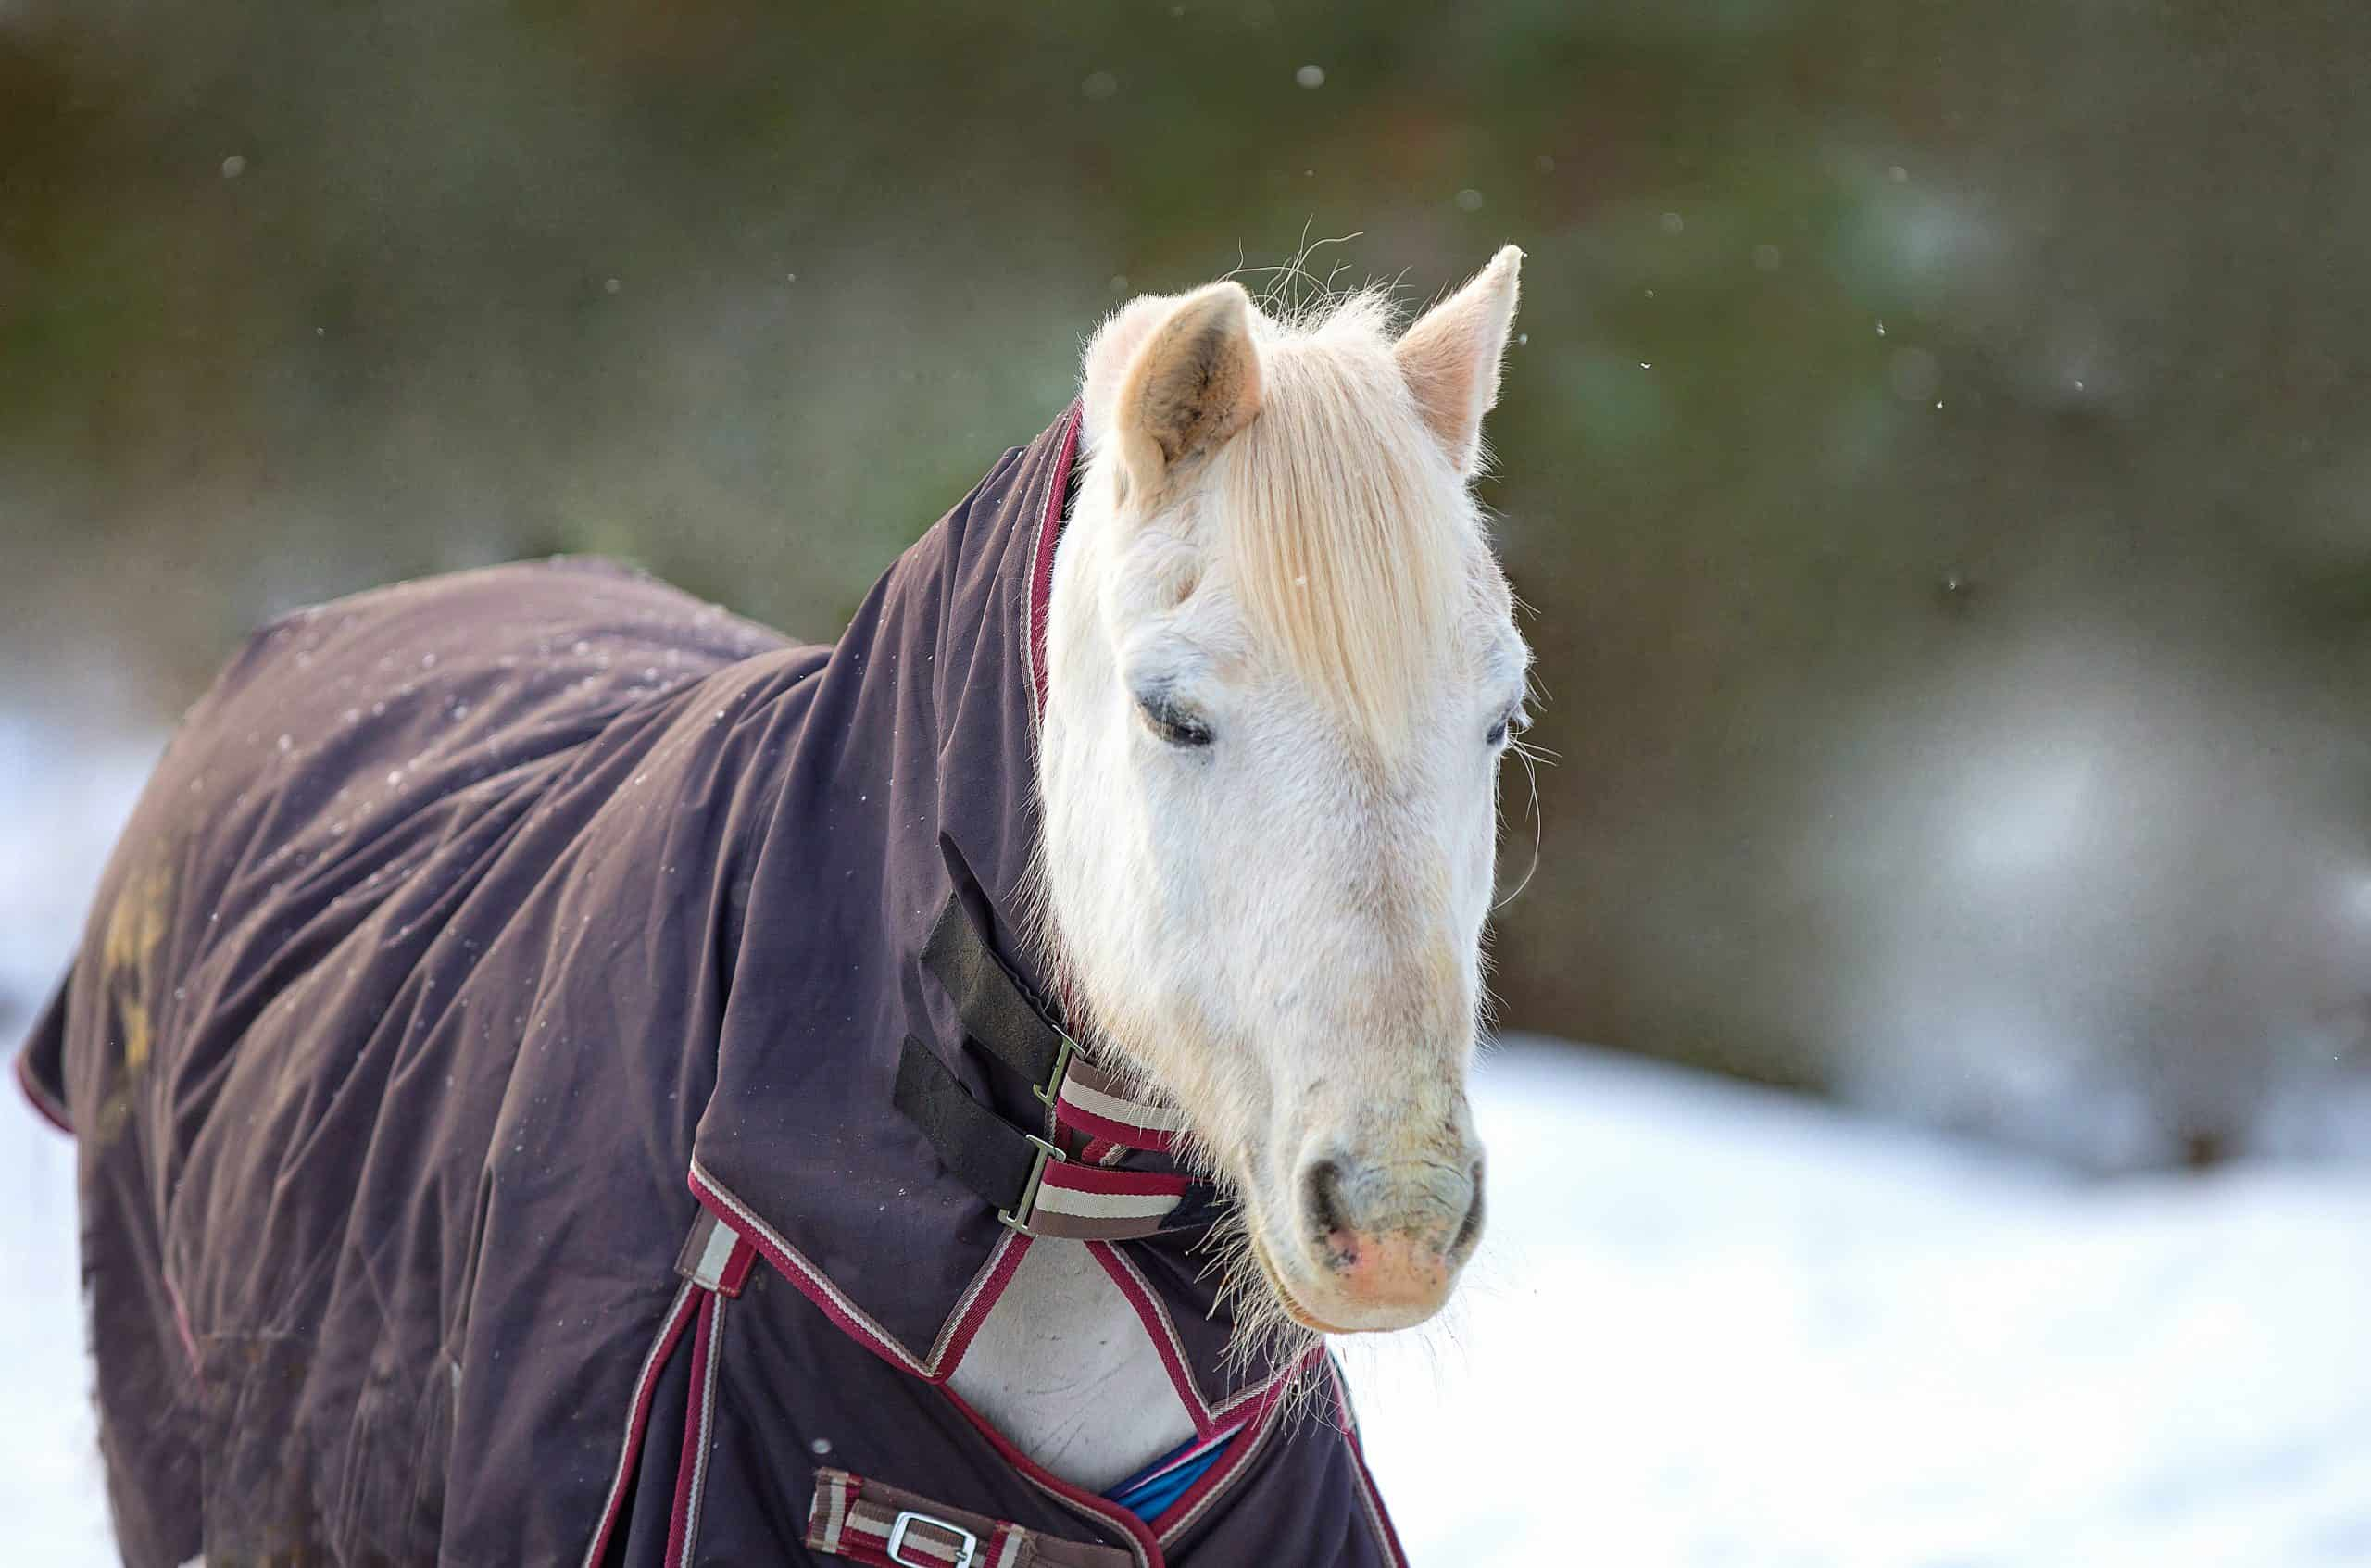 A closeup portrait of a white horse in a horse blanket, in a snowy winter setting.